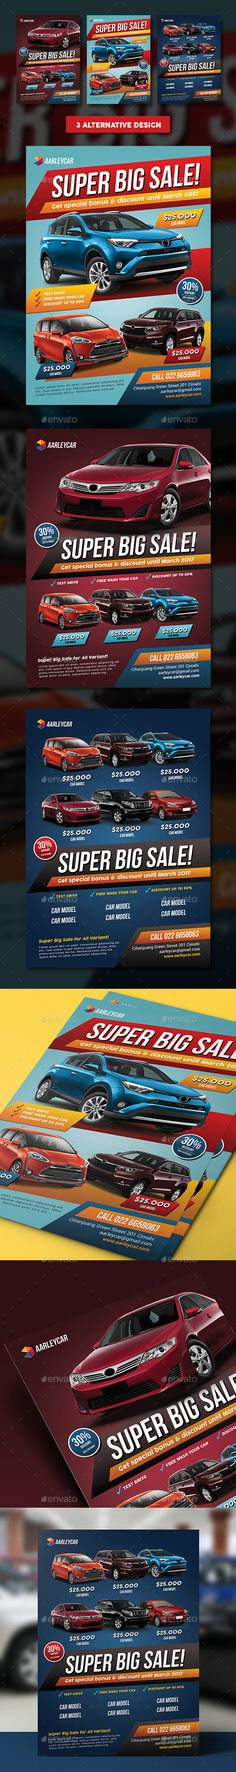 Car For Sale Flyer Nicole Enger Nicole_Enger On Pinterest